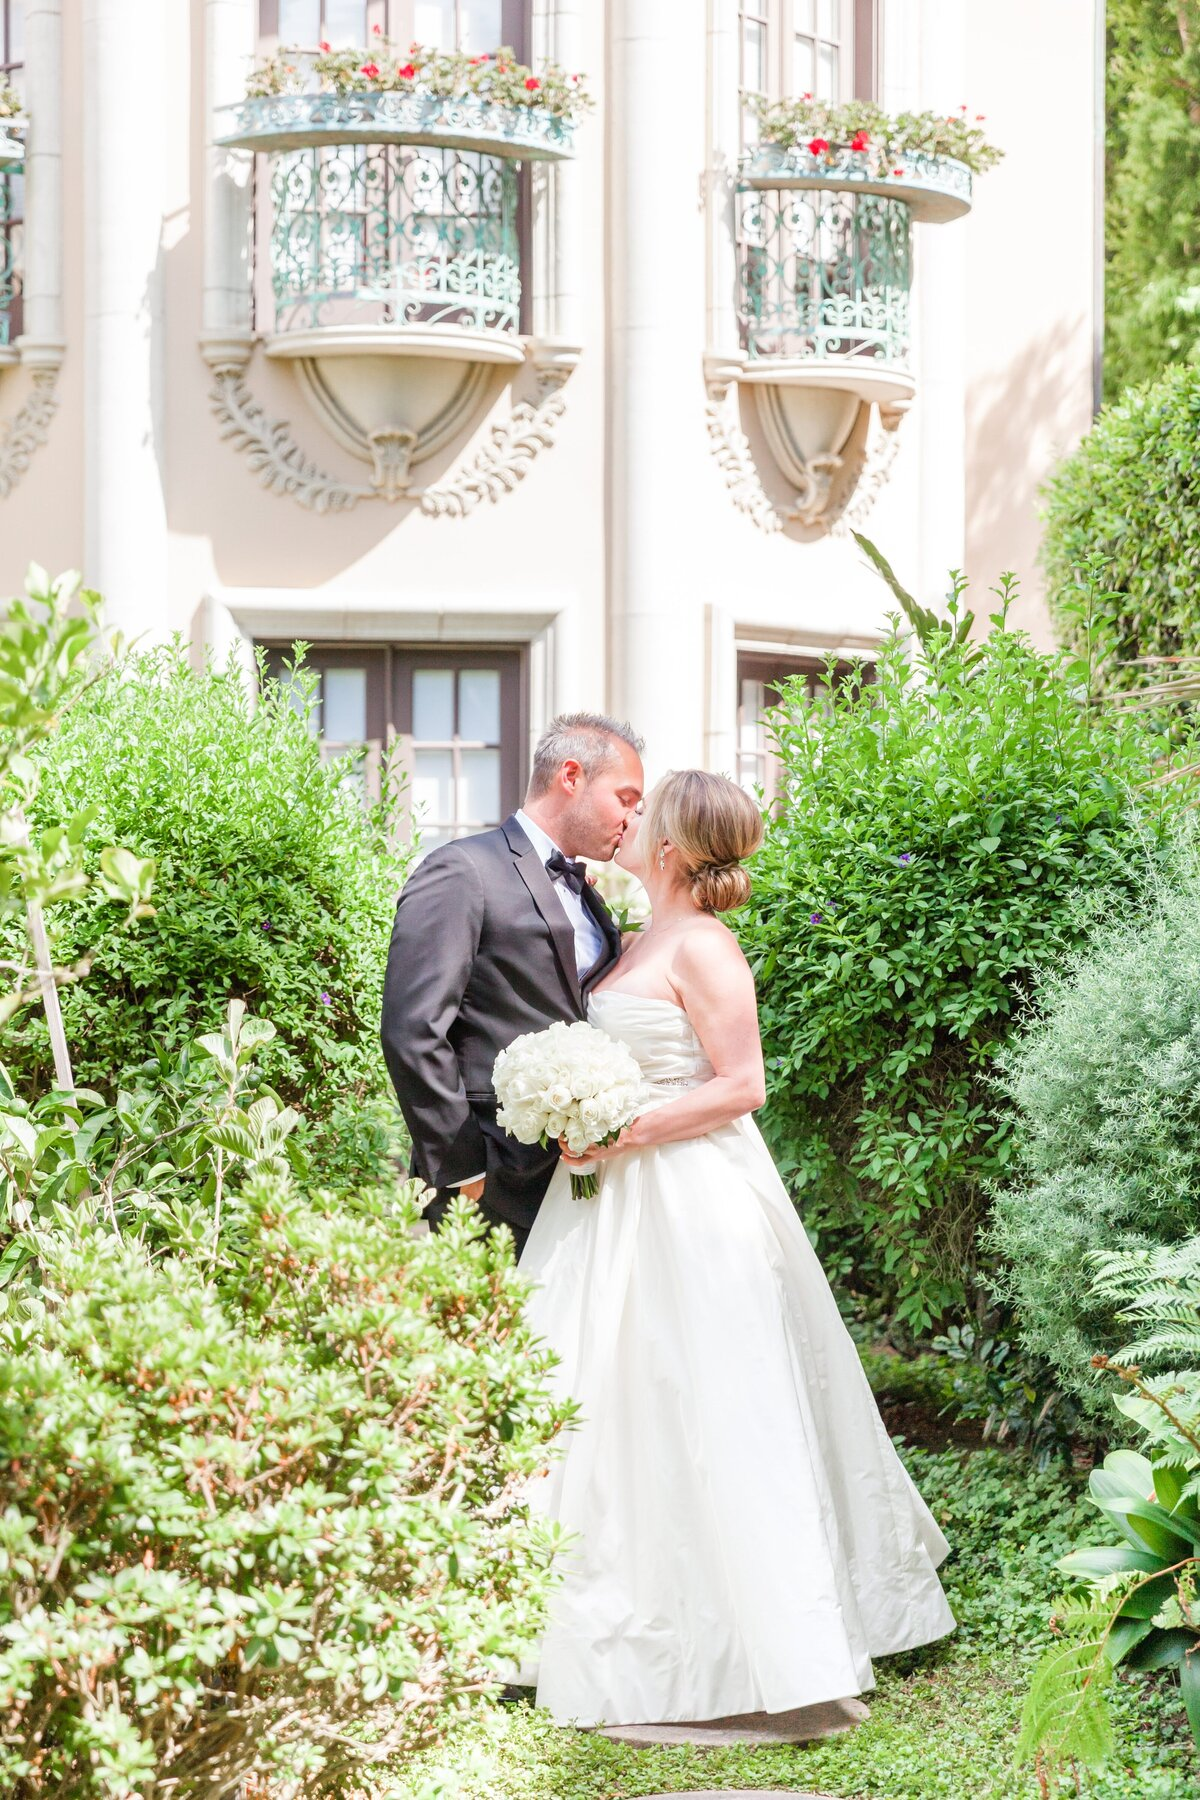 Kelli-Bee-Photography-Gallery-Malibu-Los-Angeles-Wedding-Luxury-Lifestyle-Photographer-Lauren-Ben-0044